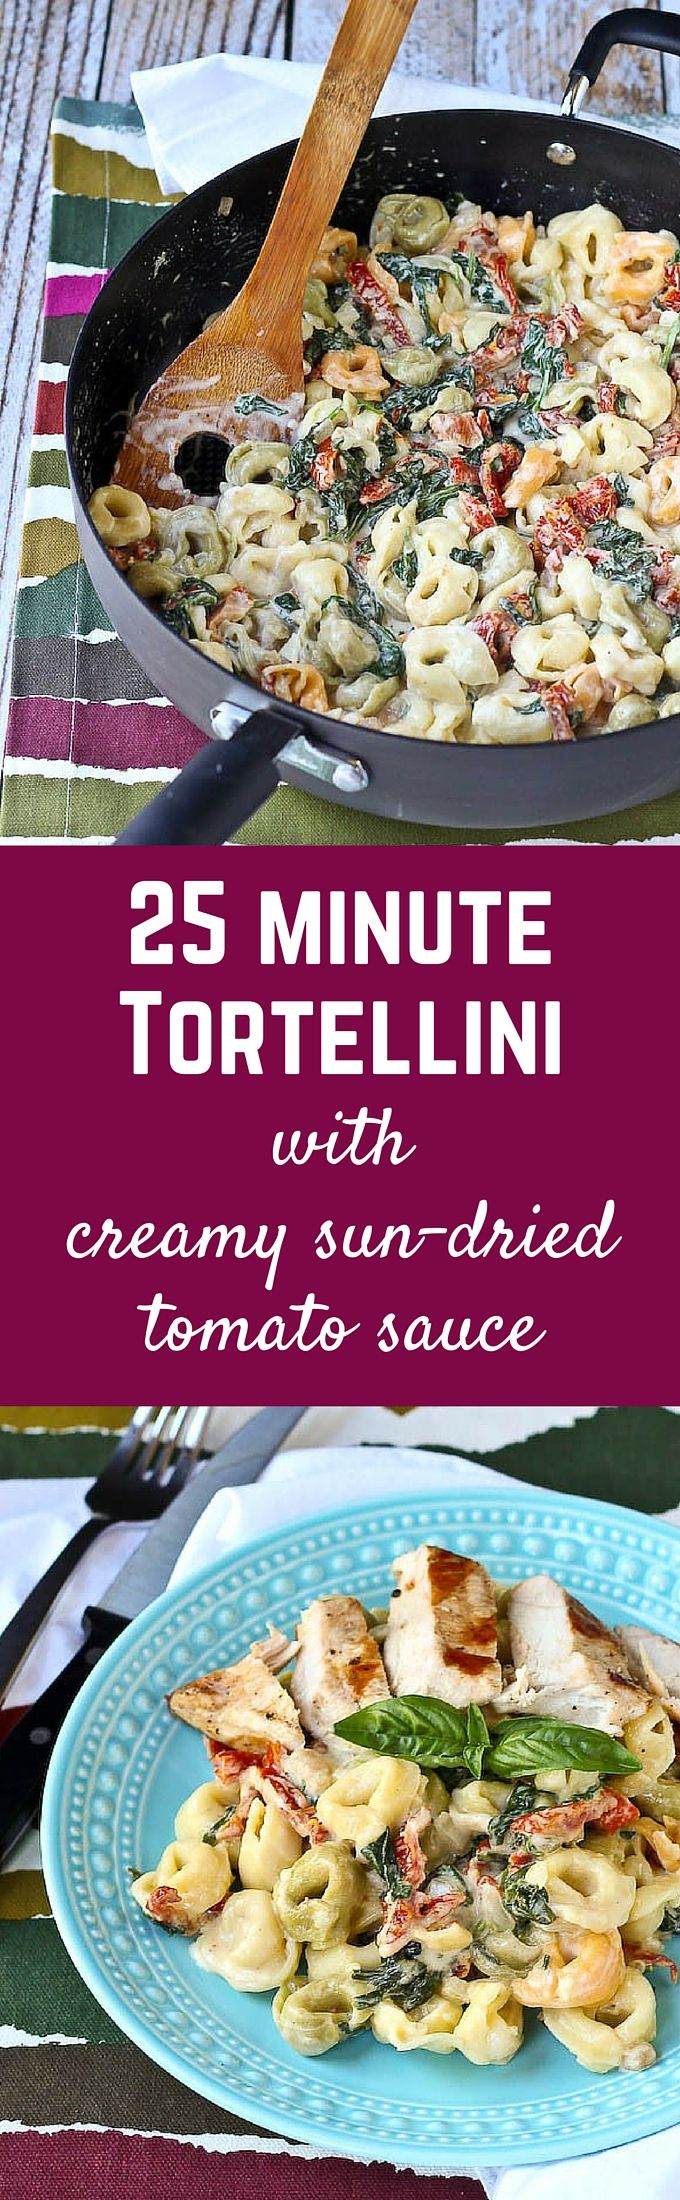 Tortellini with Creamy Sun-Dried Tomato Sauce and Spinach